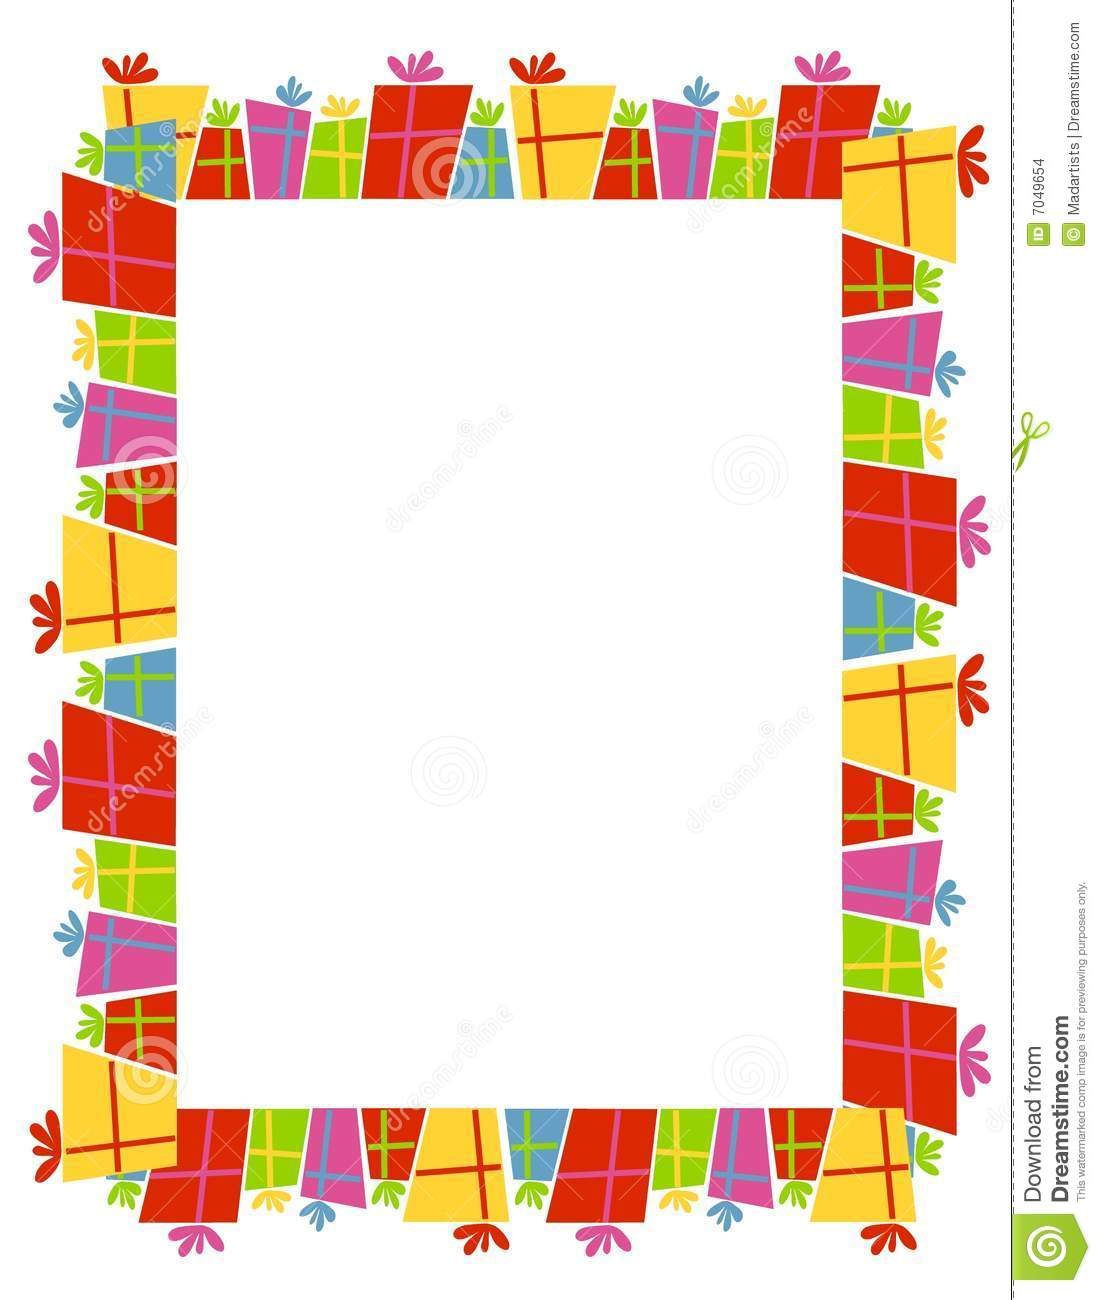 Christmas Toys Border : Retro xmas gifts border stock illustration